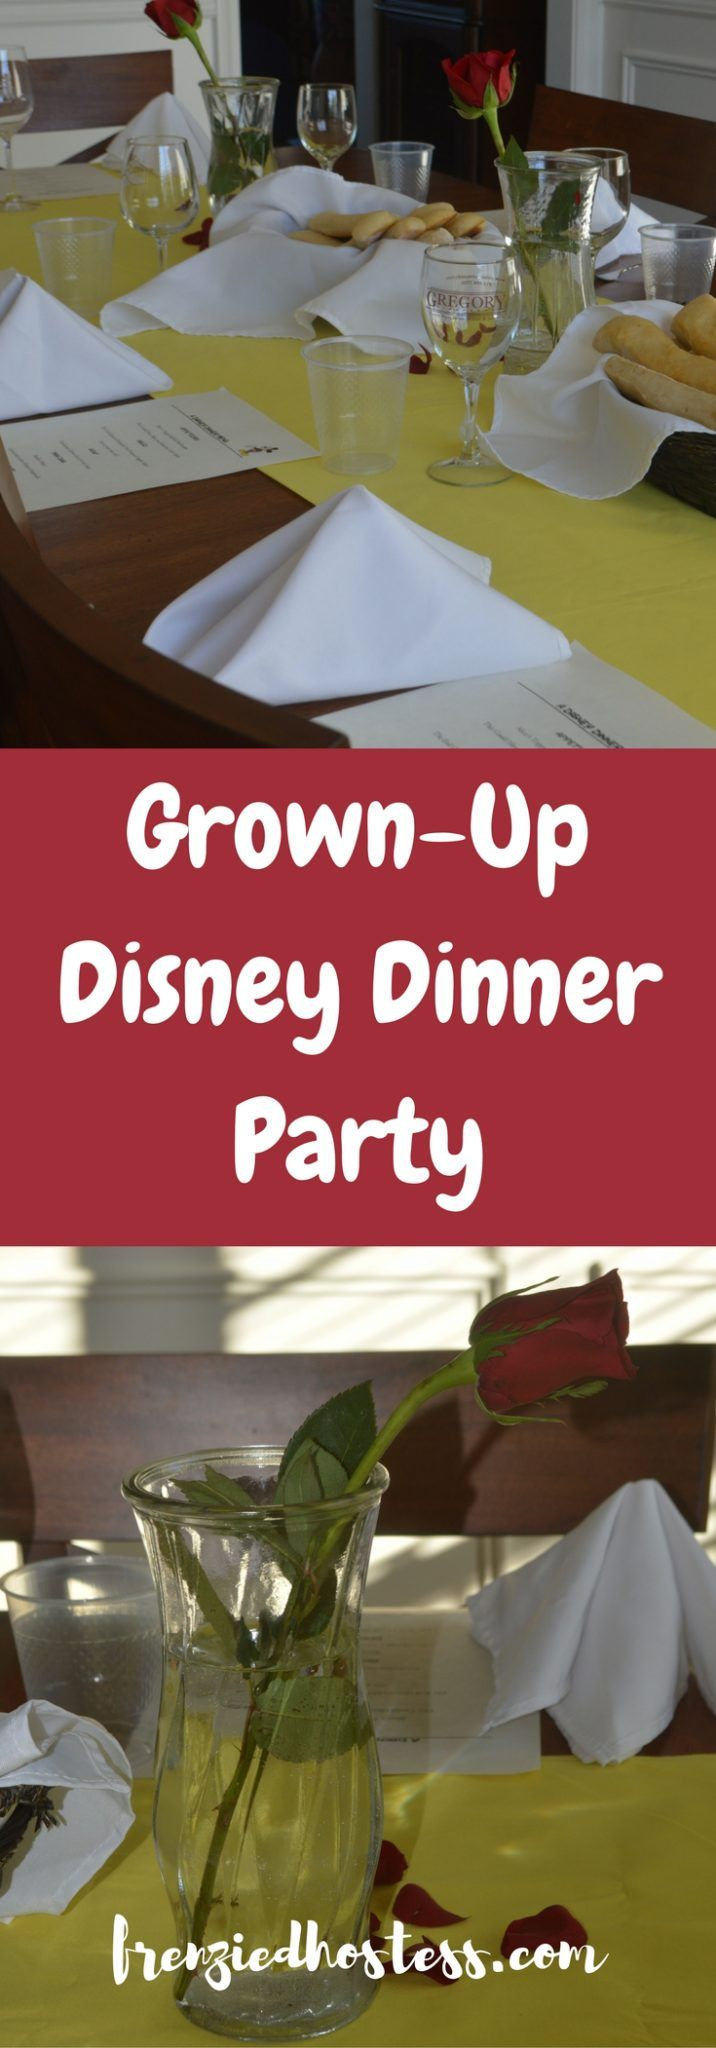 How to Host a Fancy Disney Themed Dinner Party